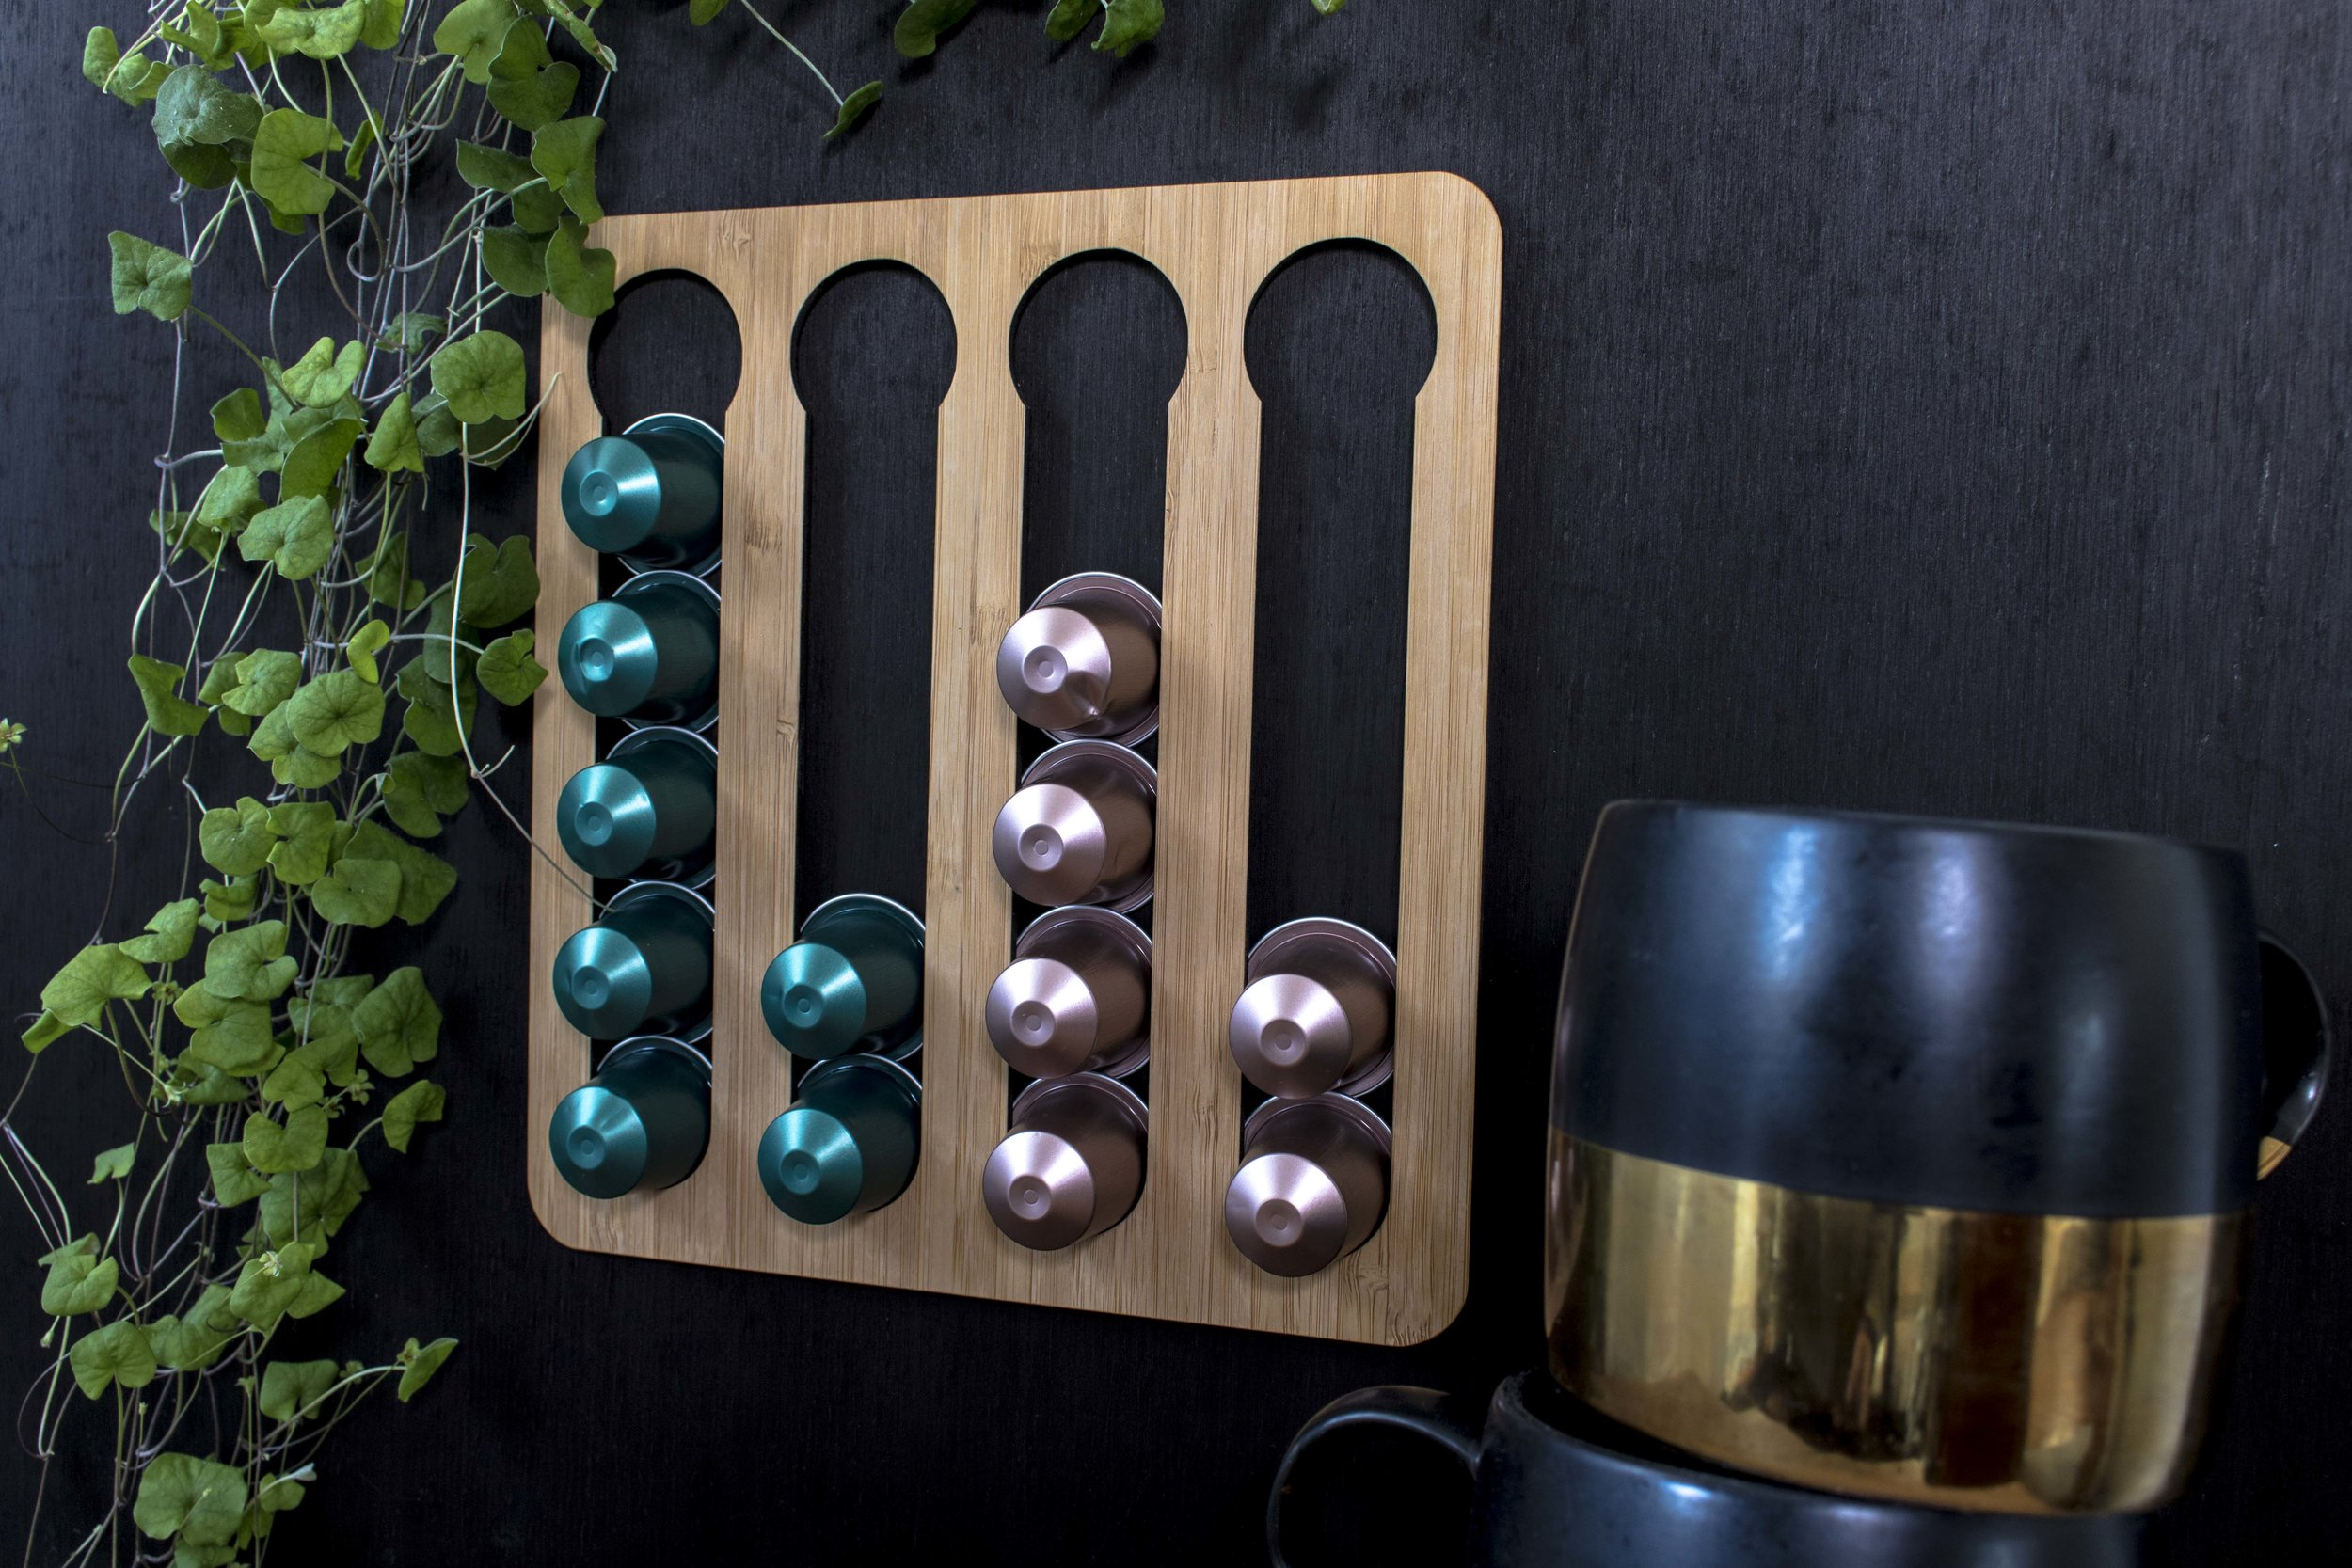 nespresso holder oringinal dark.jpg